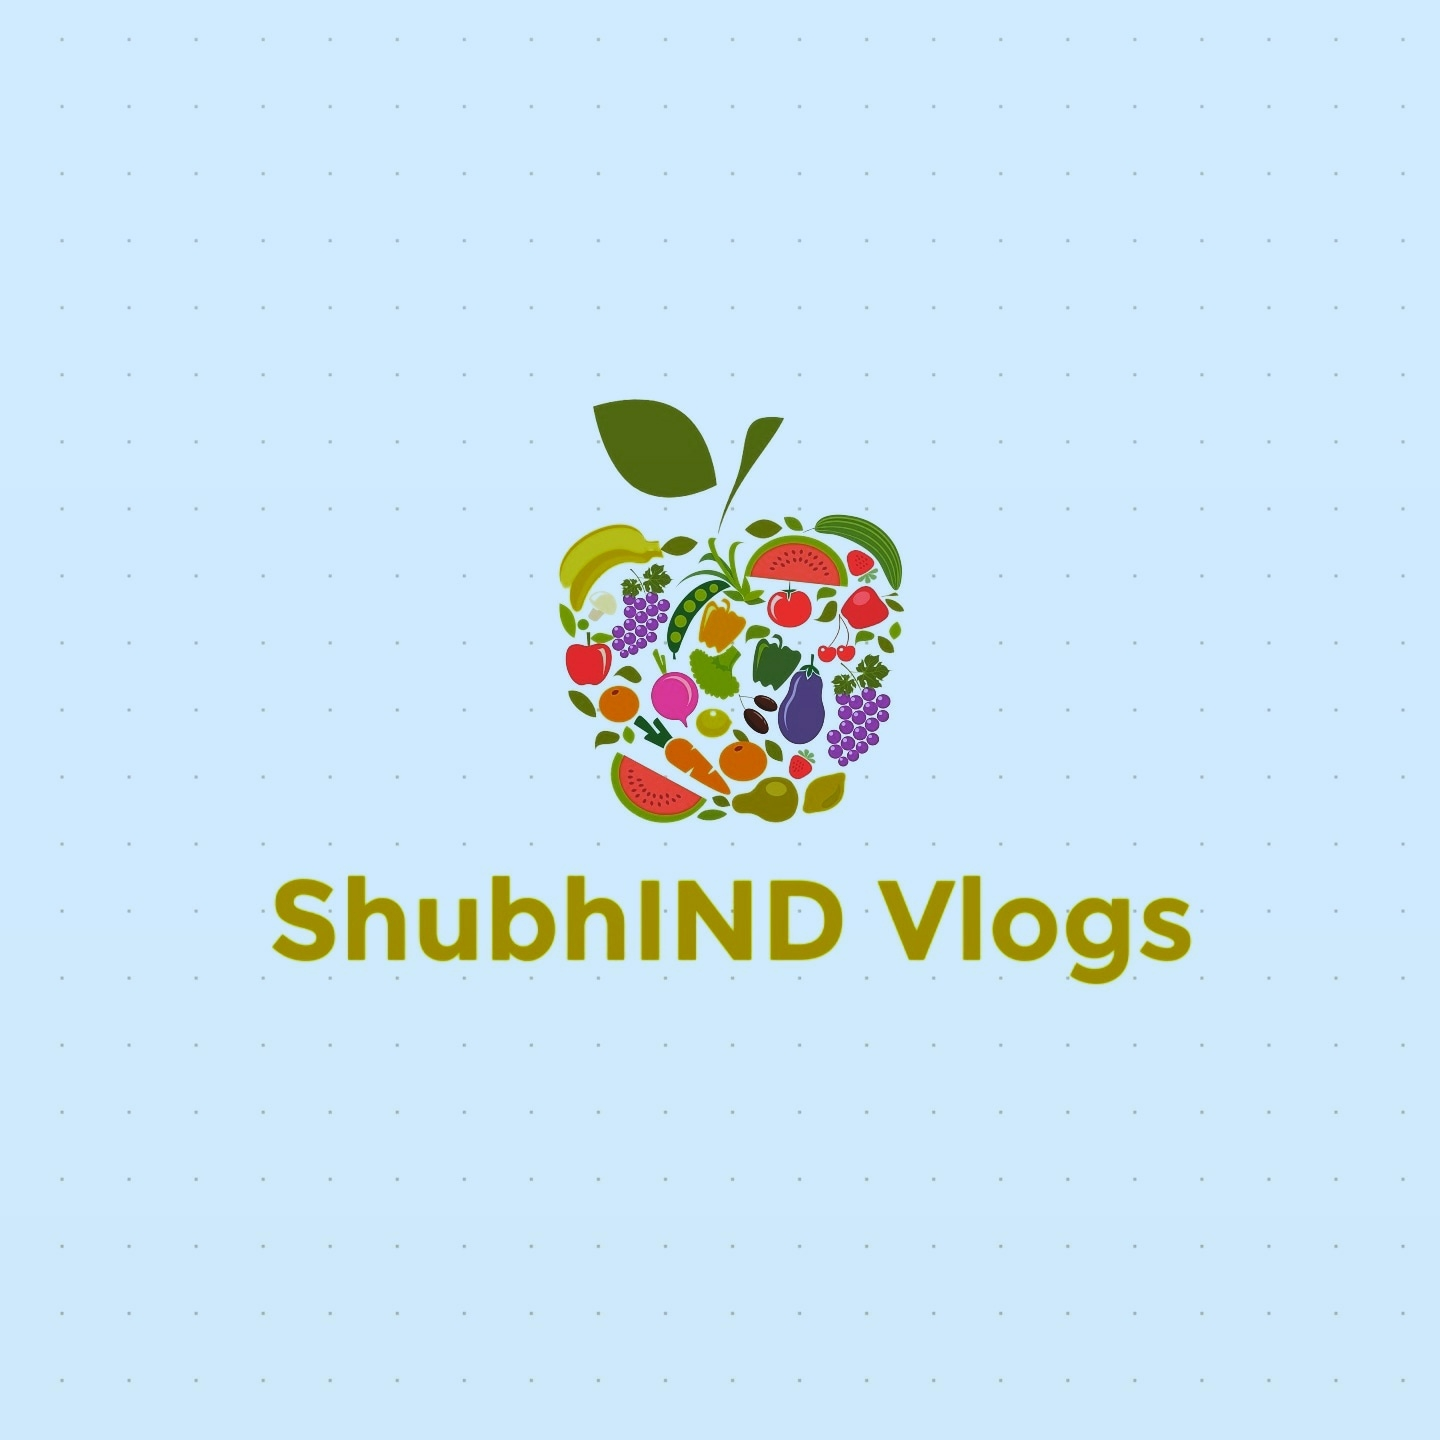 (@shubhind_vlogs) Cover Image